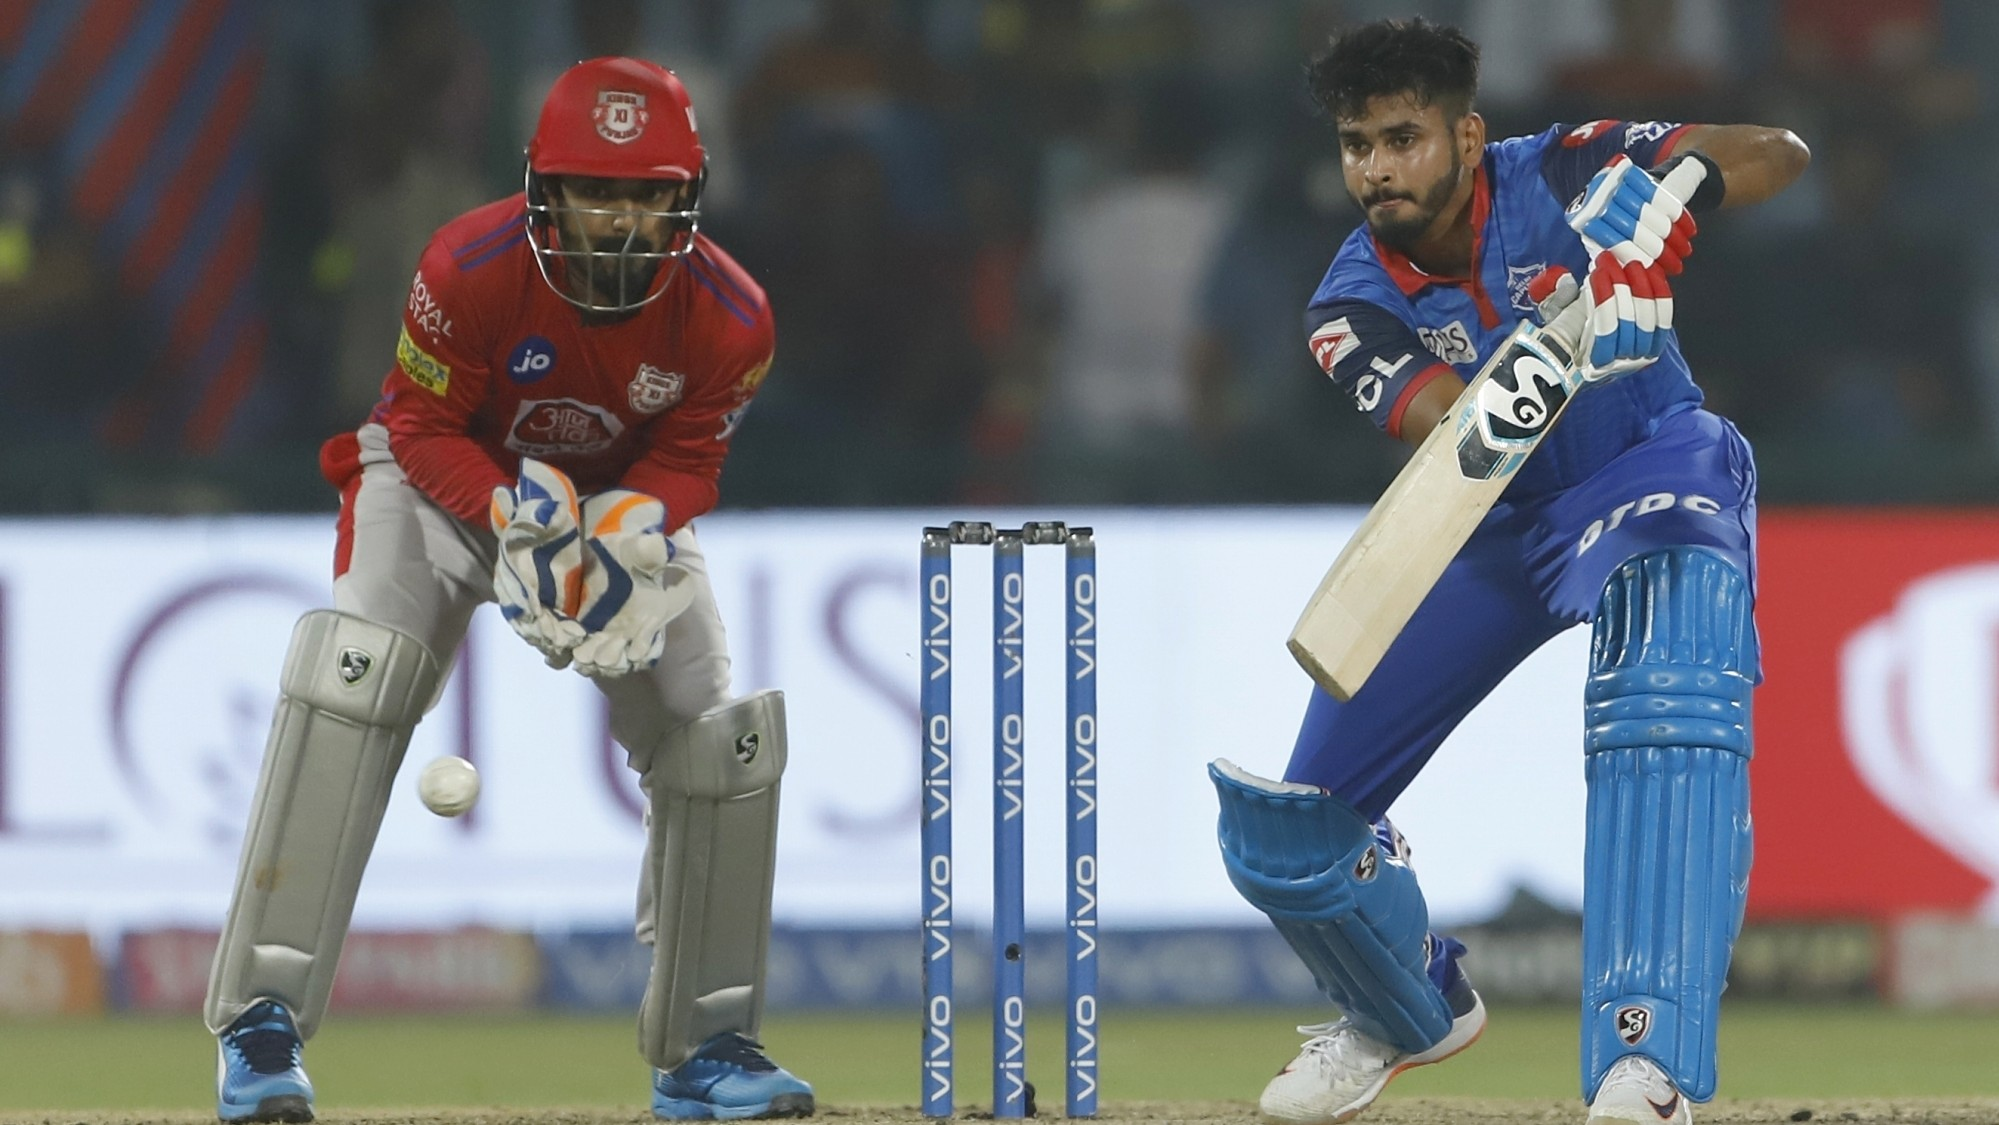 IPL 2020: Match 2, DC v KXIP - Statistical Preview